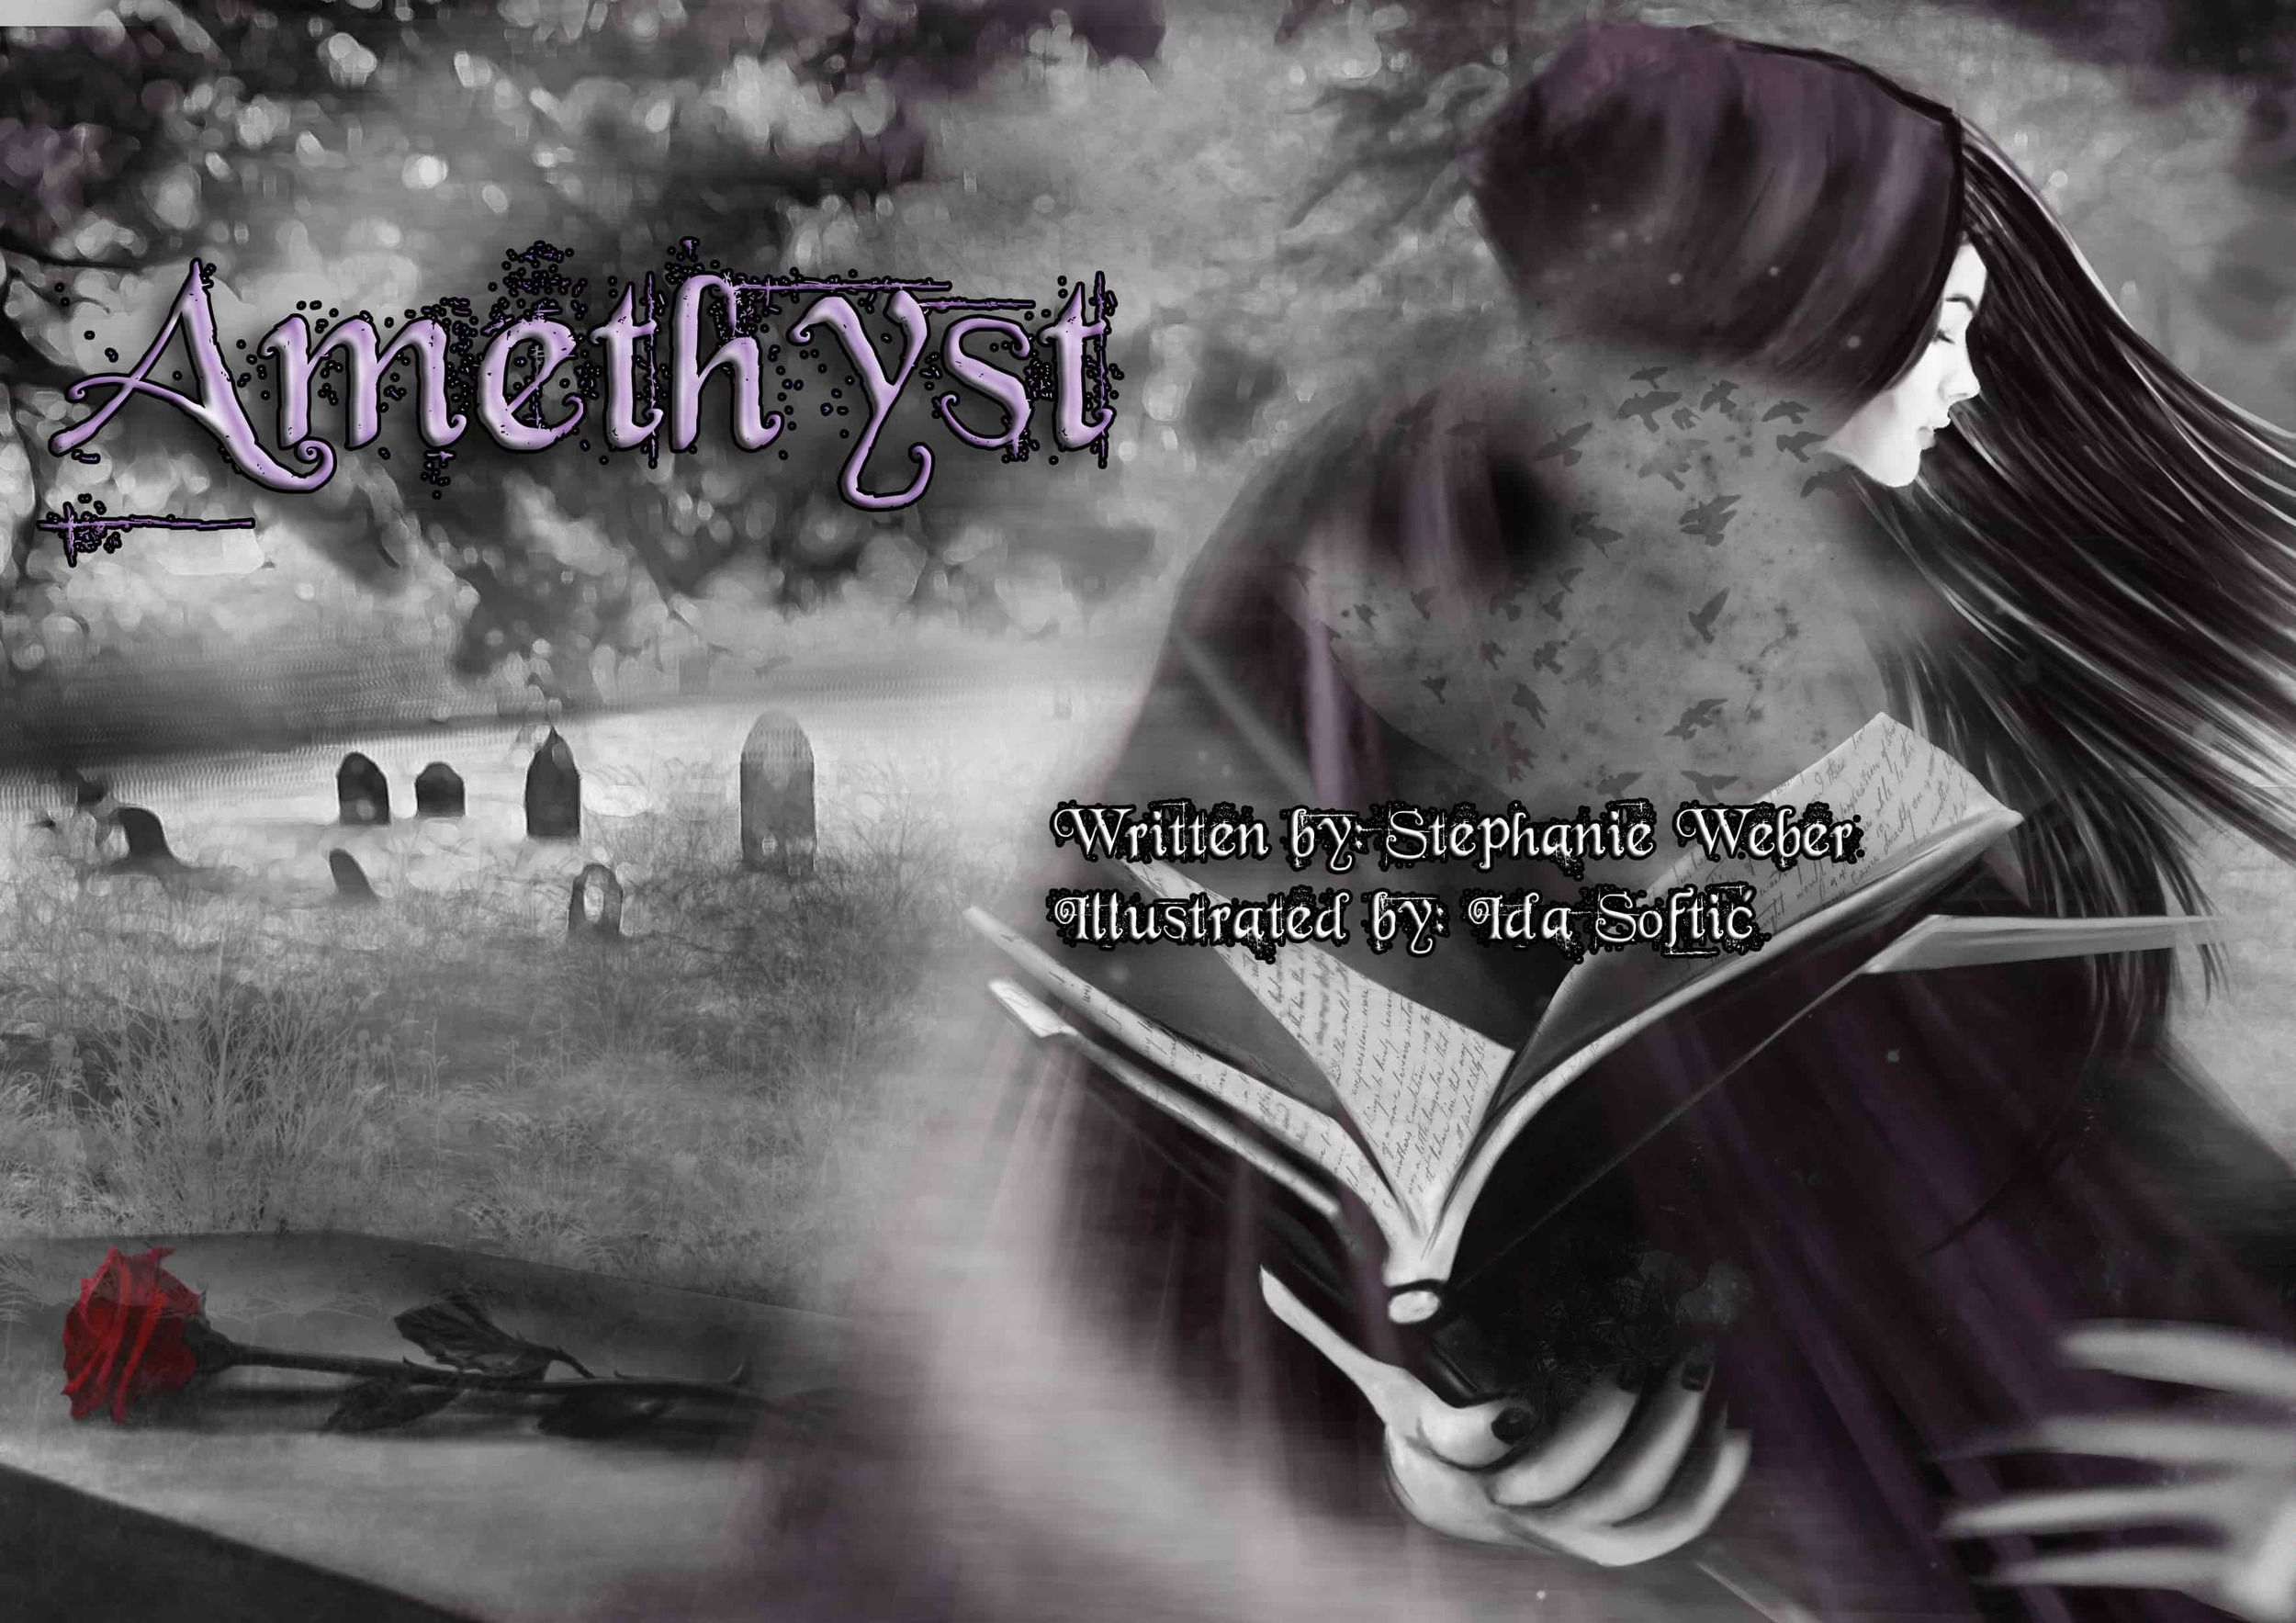 Monthly Fiction Amethyst illustration illustraded story stephanie weber ida softic